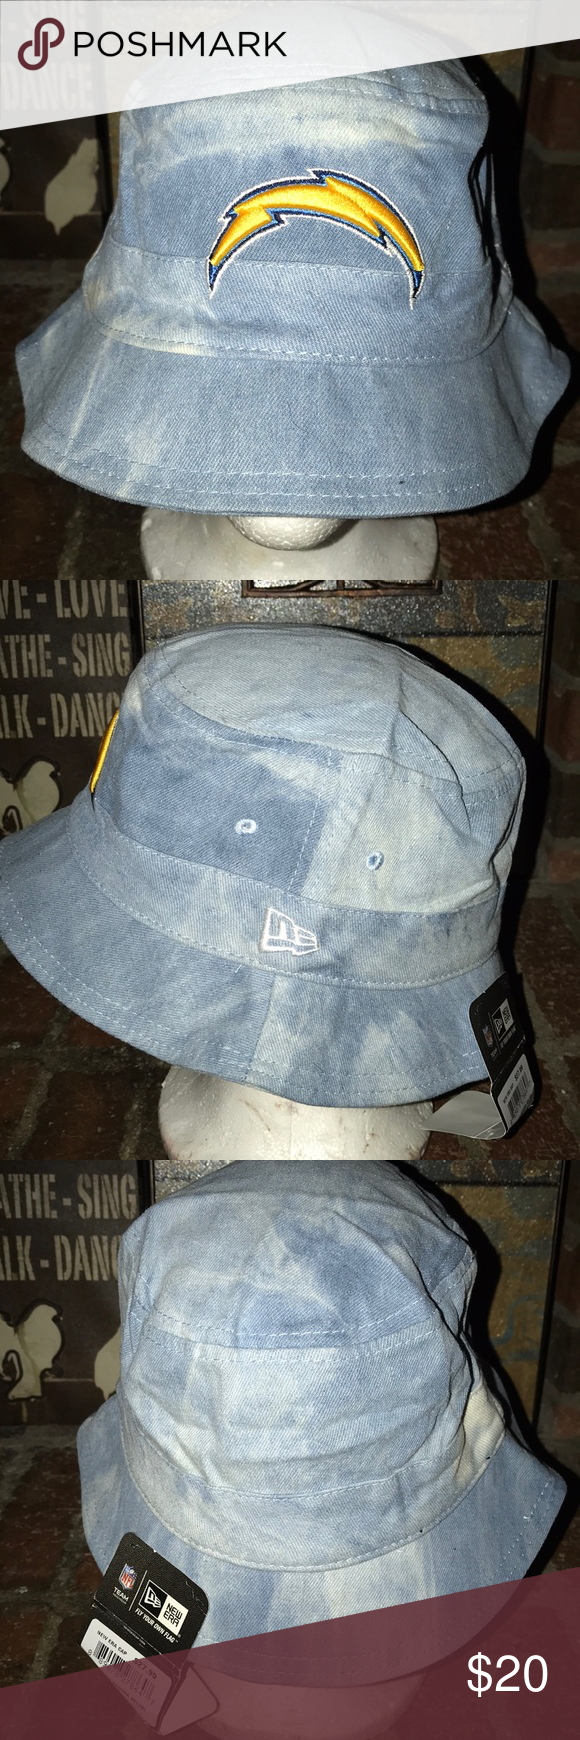 187ae13d546 New Era San Diego Chargers Bucket Hat Hat is brand new and never worn! 100% Authentic  New Era Accessories Hats